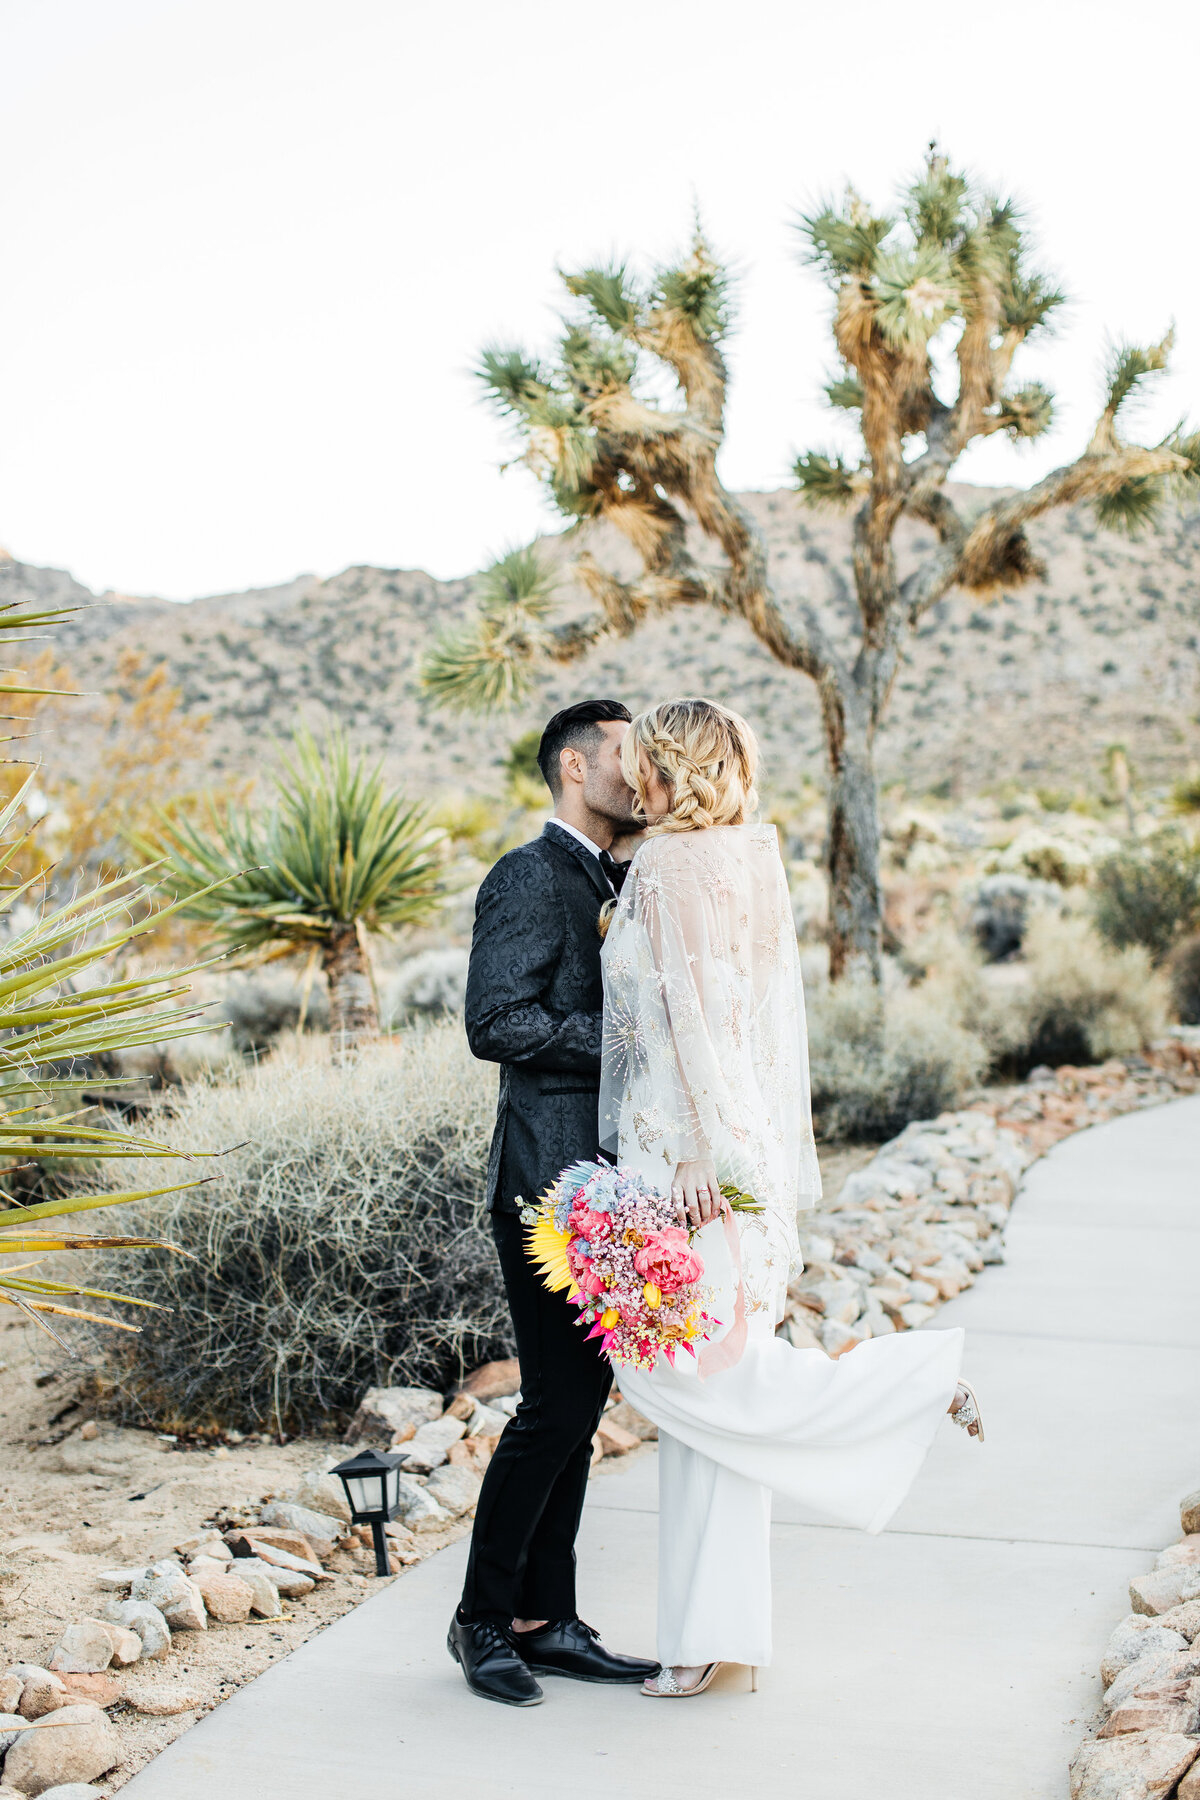 colorful-joshua-tree-elopement-inspiration-joshua-tree-wedding-photographer-palm-springs-wedding-photographer-erin-marton-photography-43